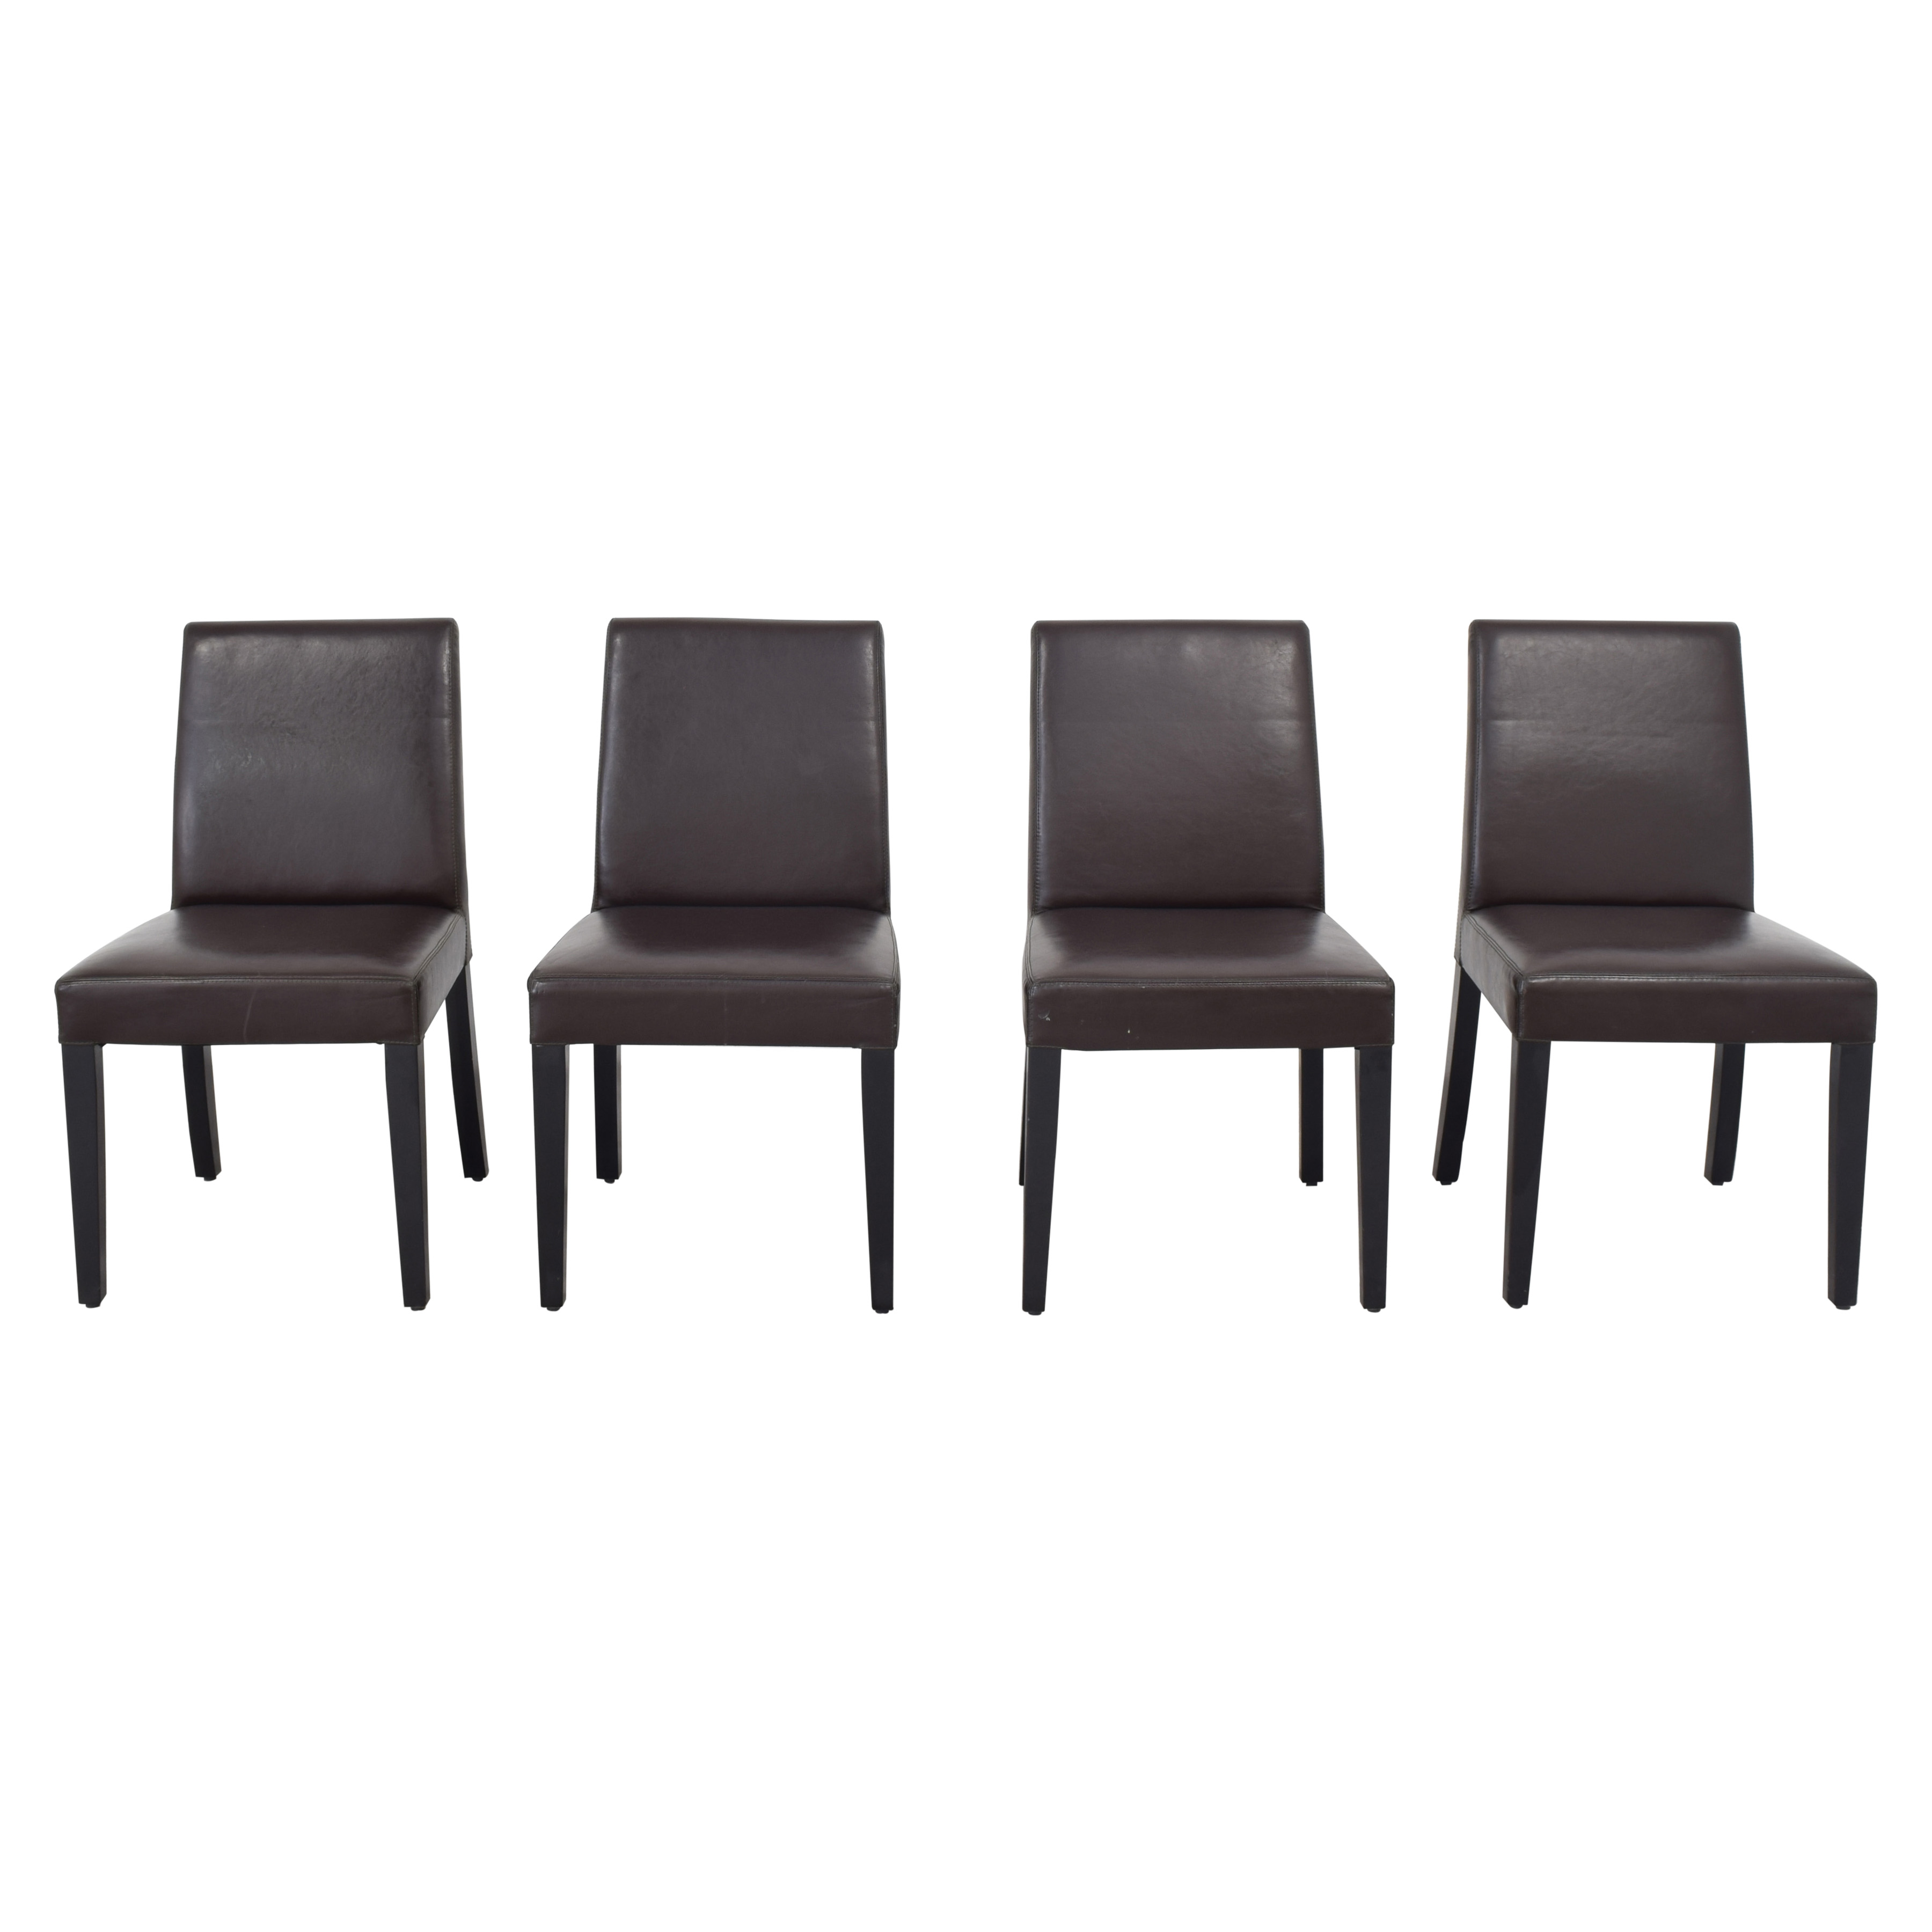 Crate & Barrel Dining Chairs sale